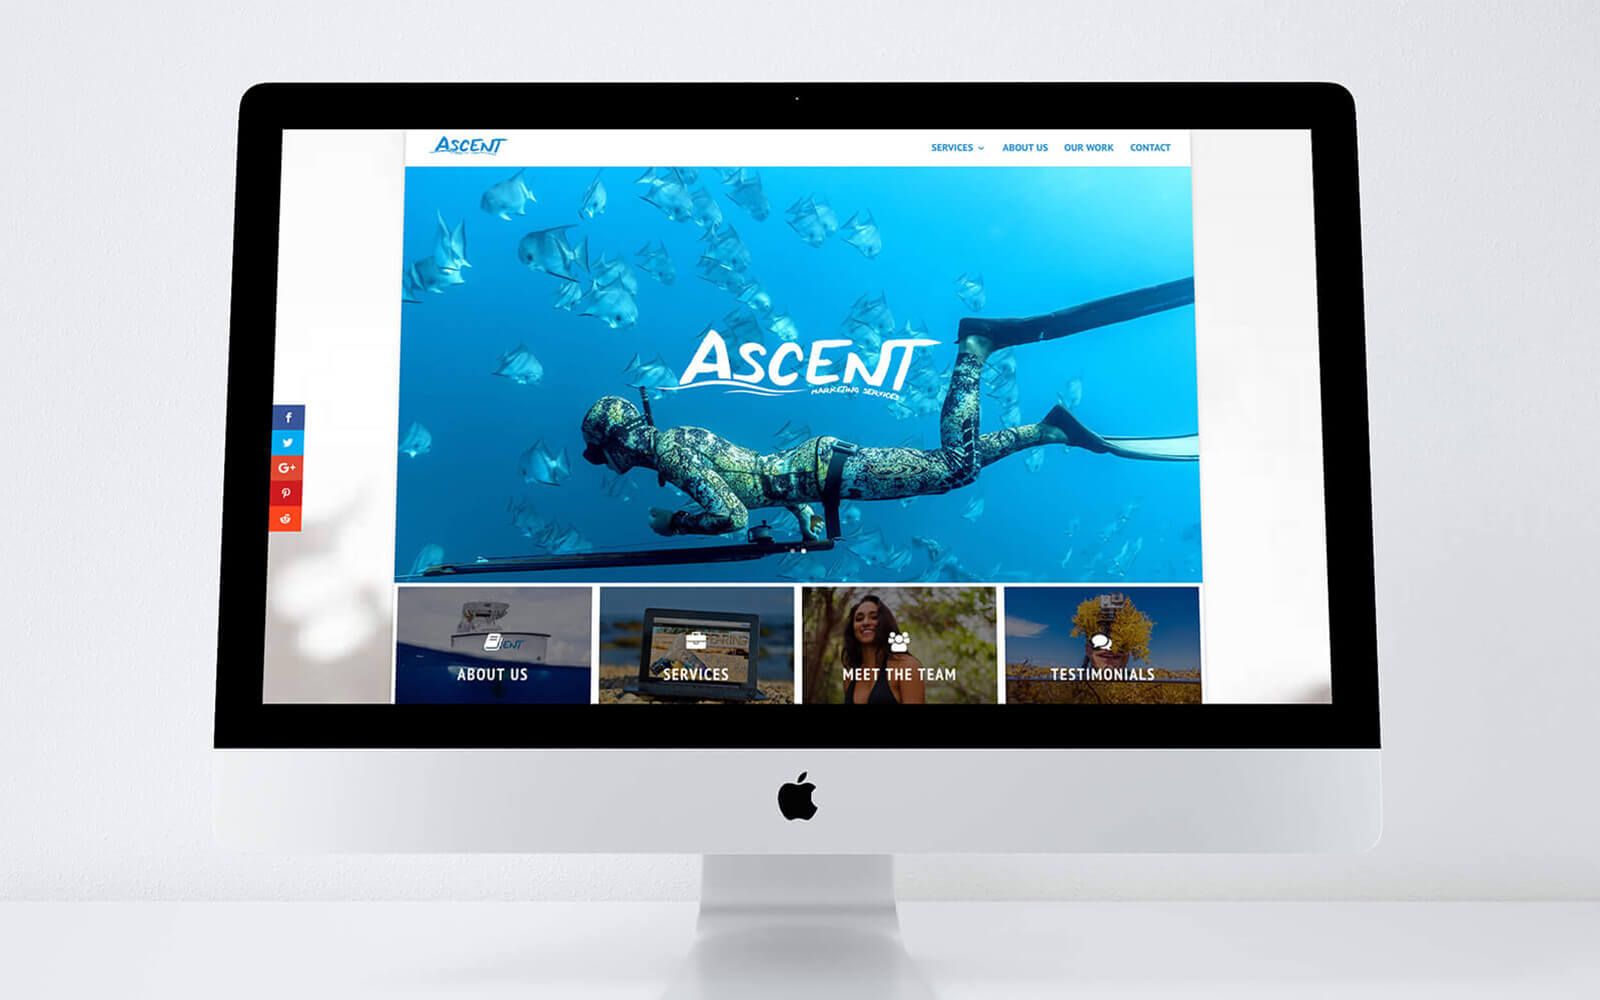 Ascent Marketing Services mockup